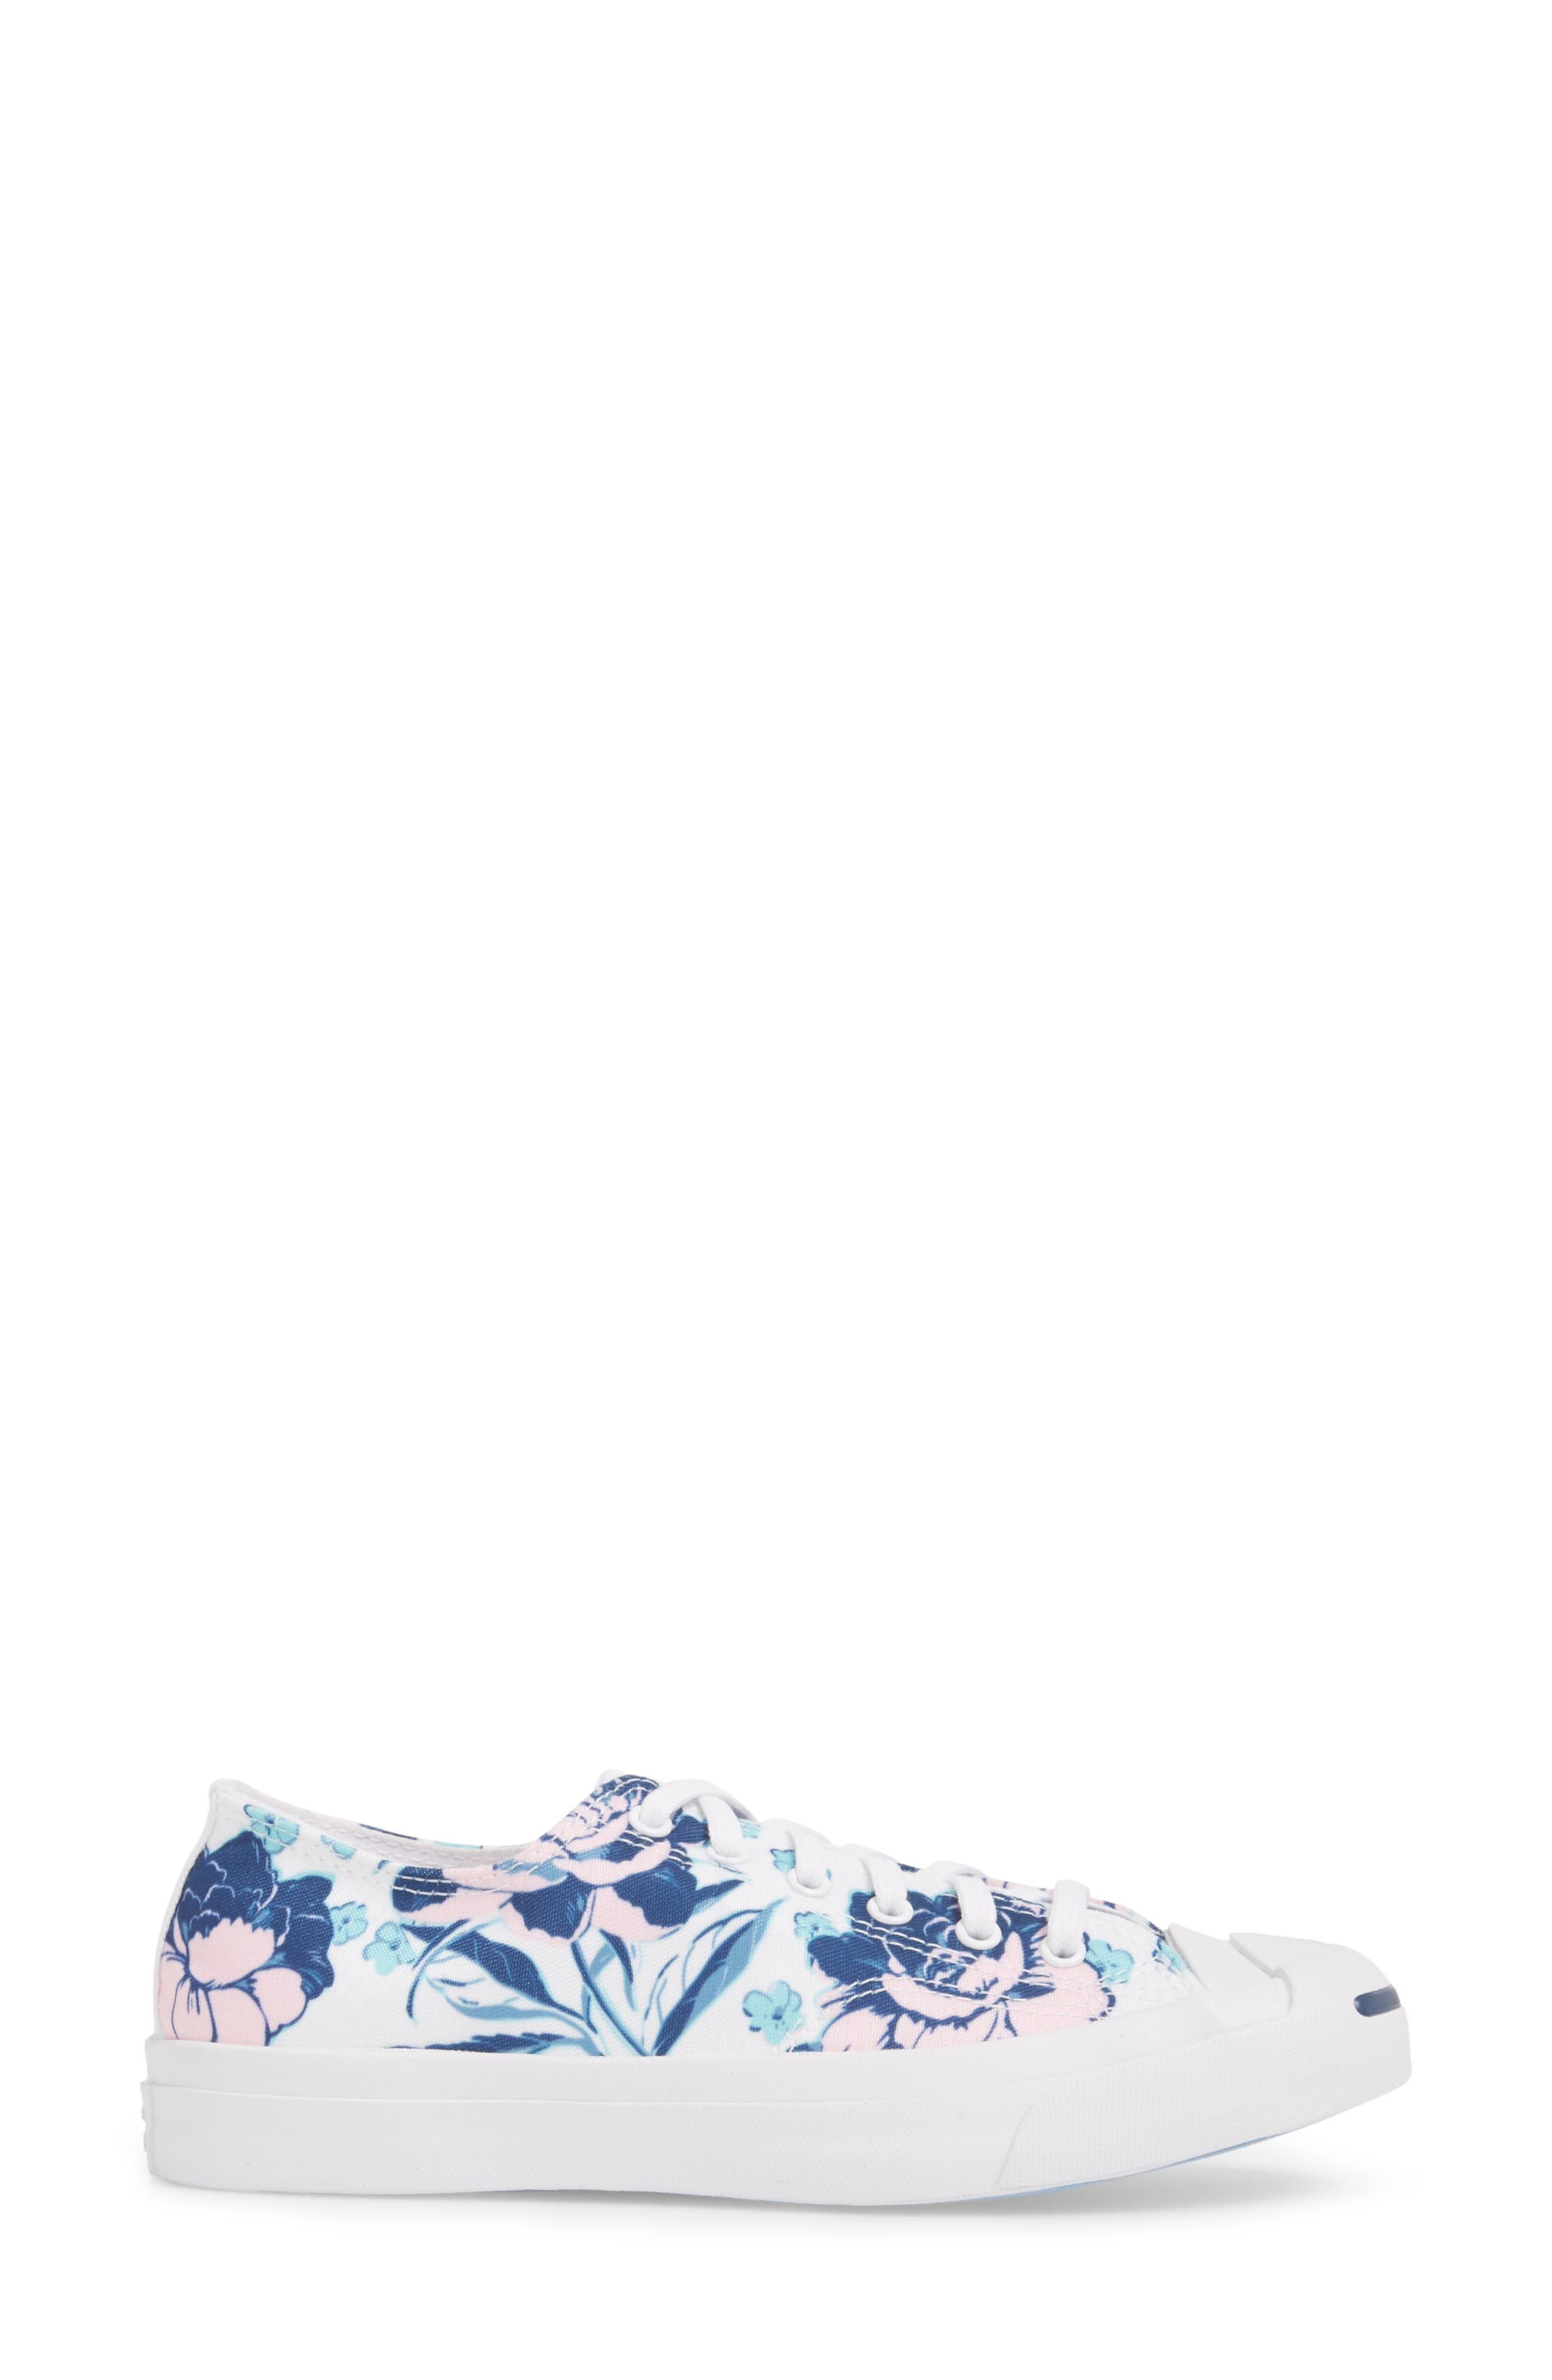 ,                             Jack Purcell Low Top Sneaker,                             Alternate thumbnail 27, color,                             114